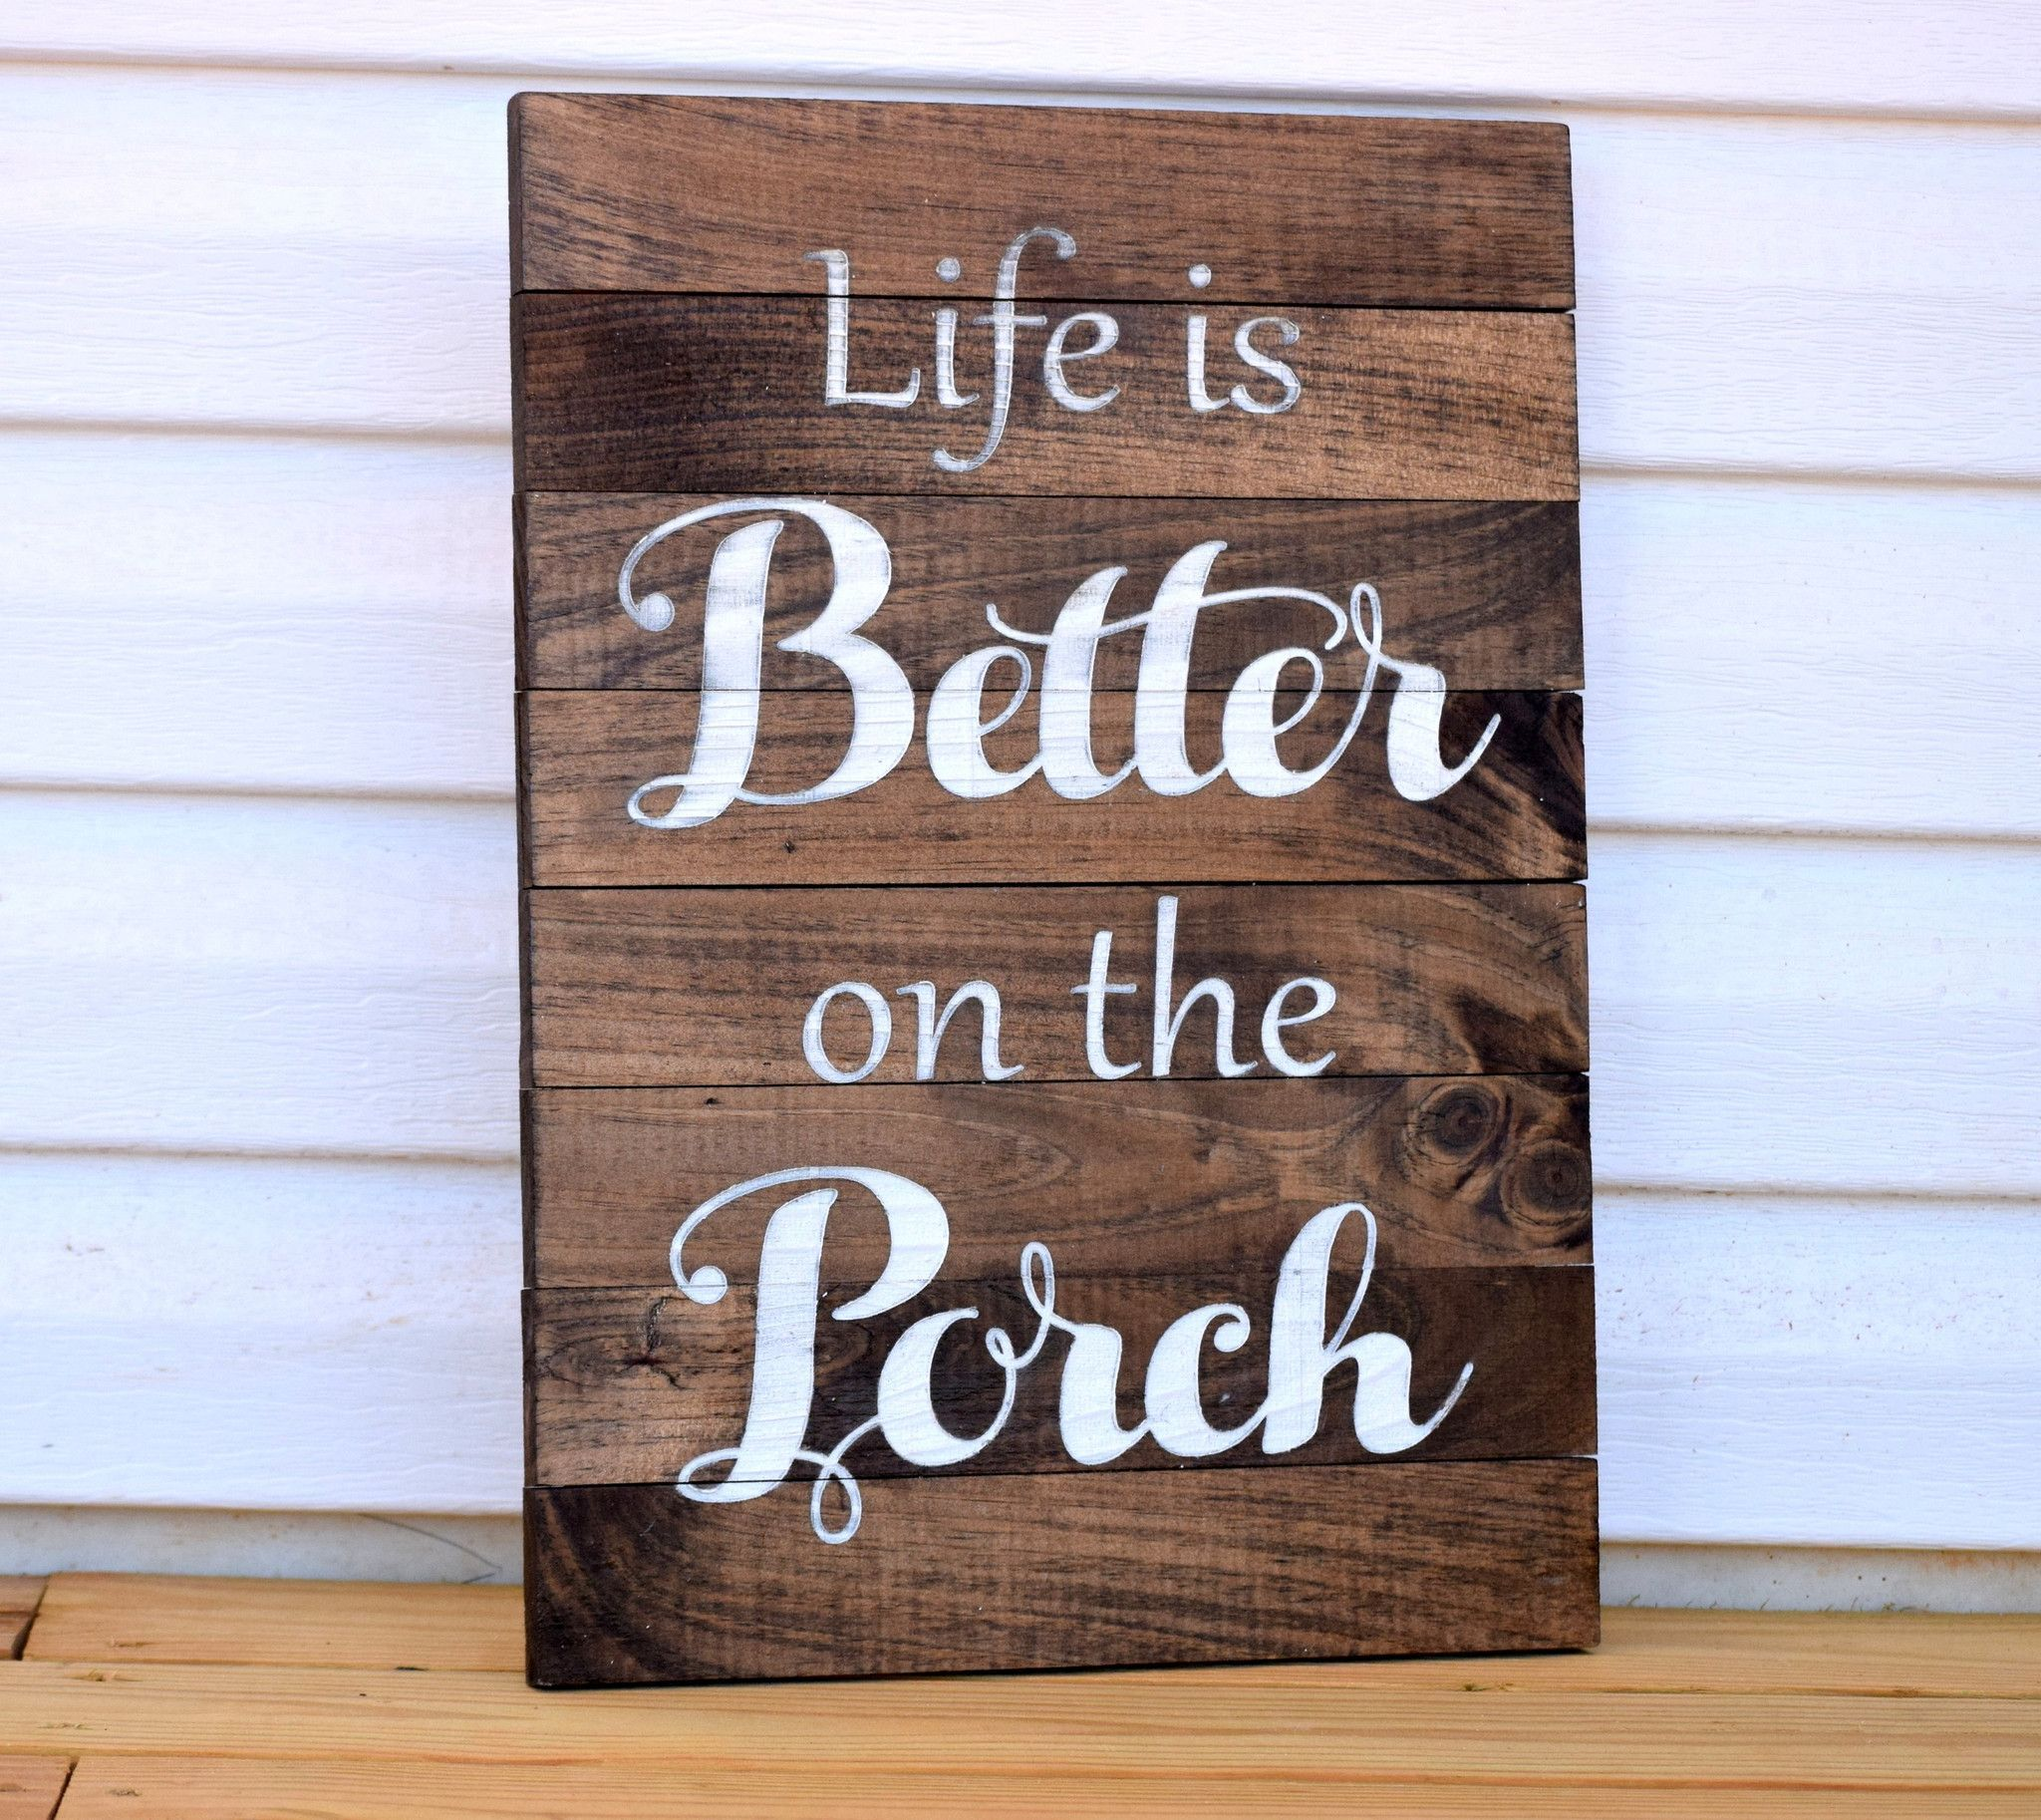 Life better on porch sign wood yard garden porch decor plaque saying quote